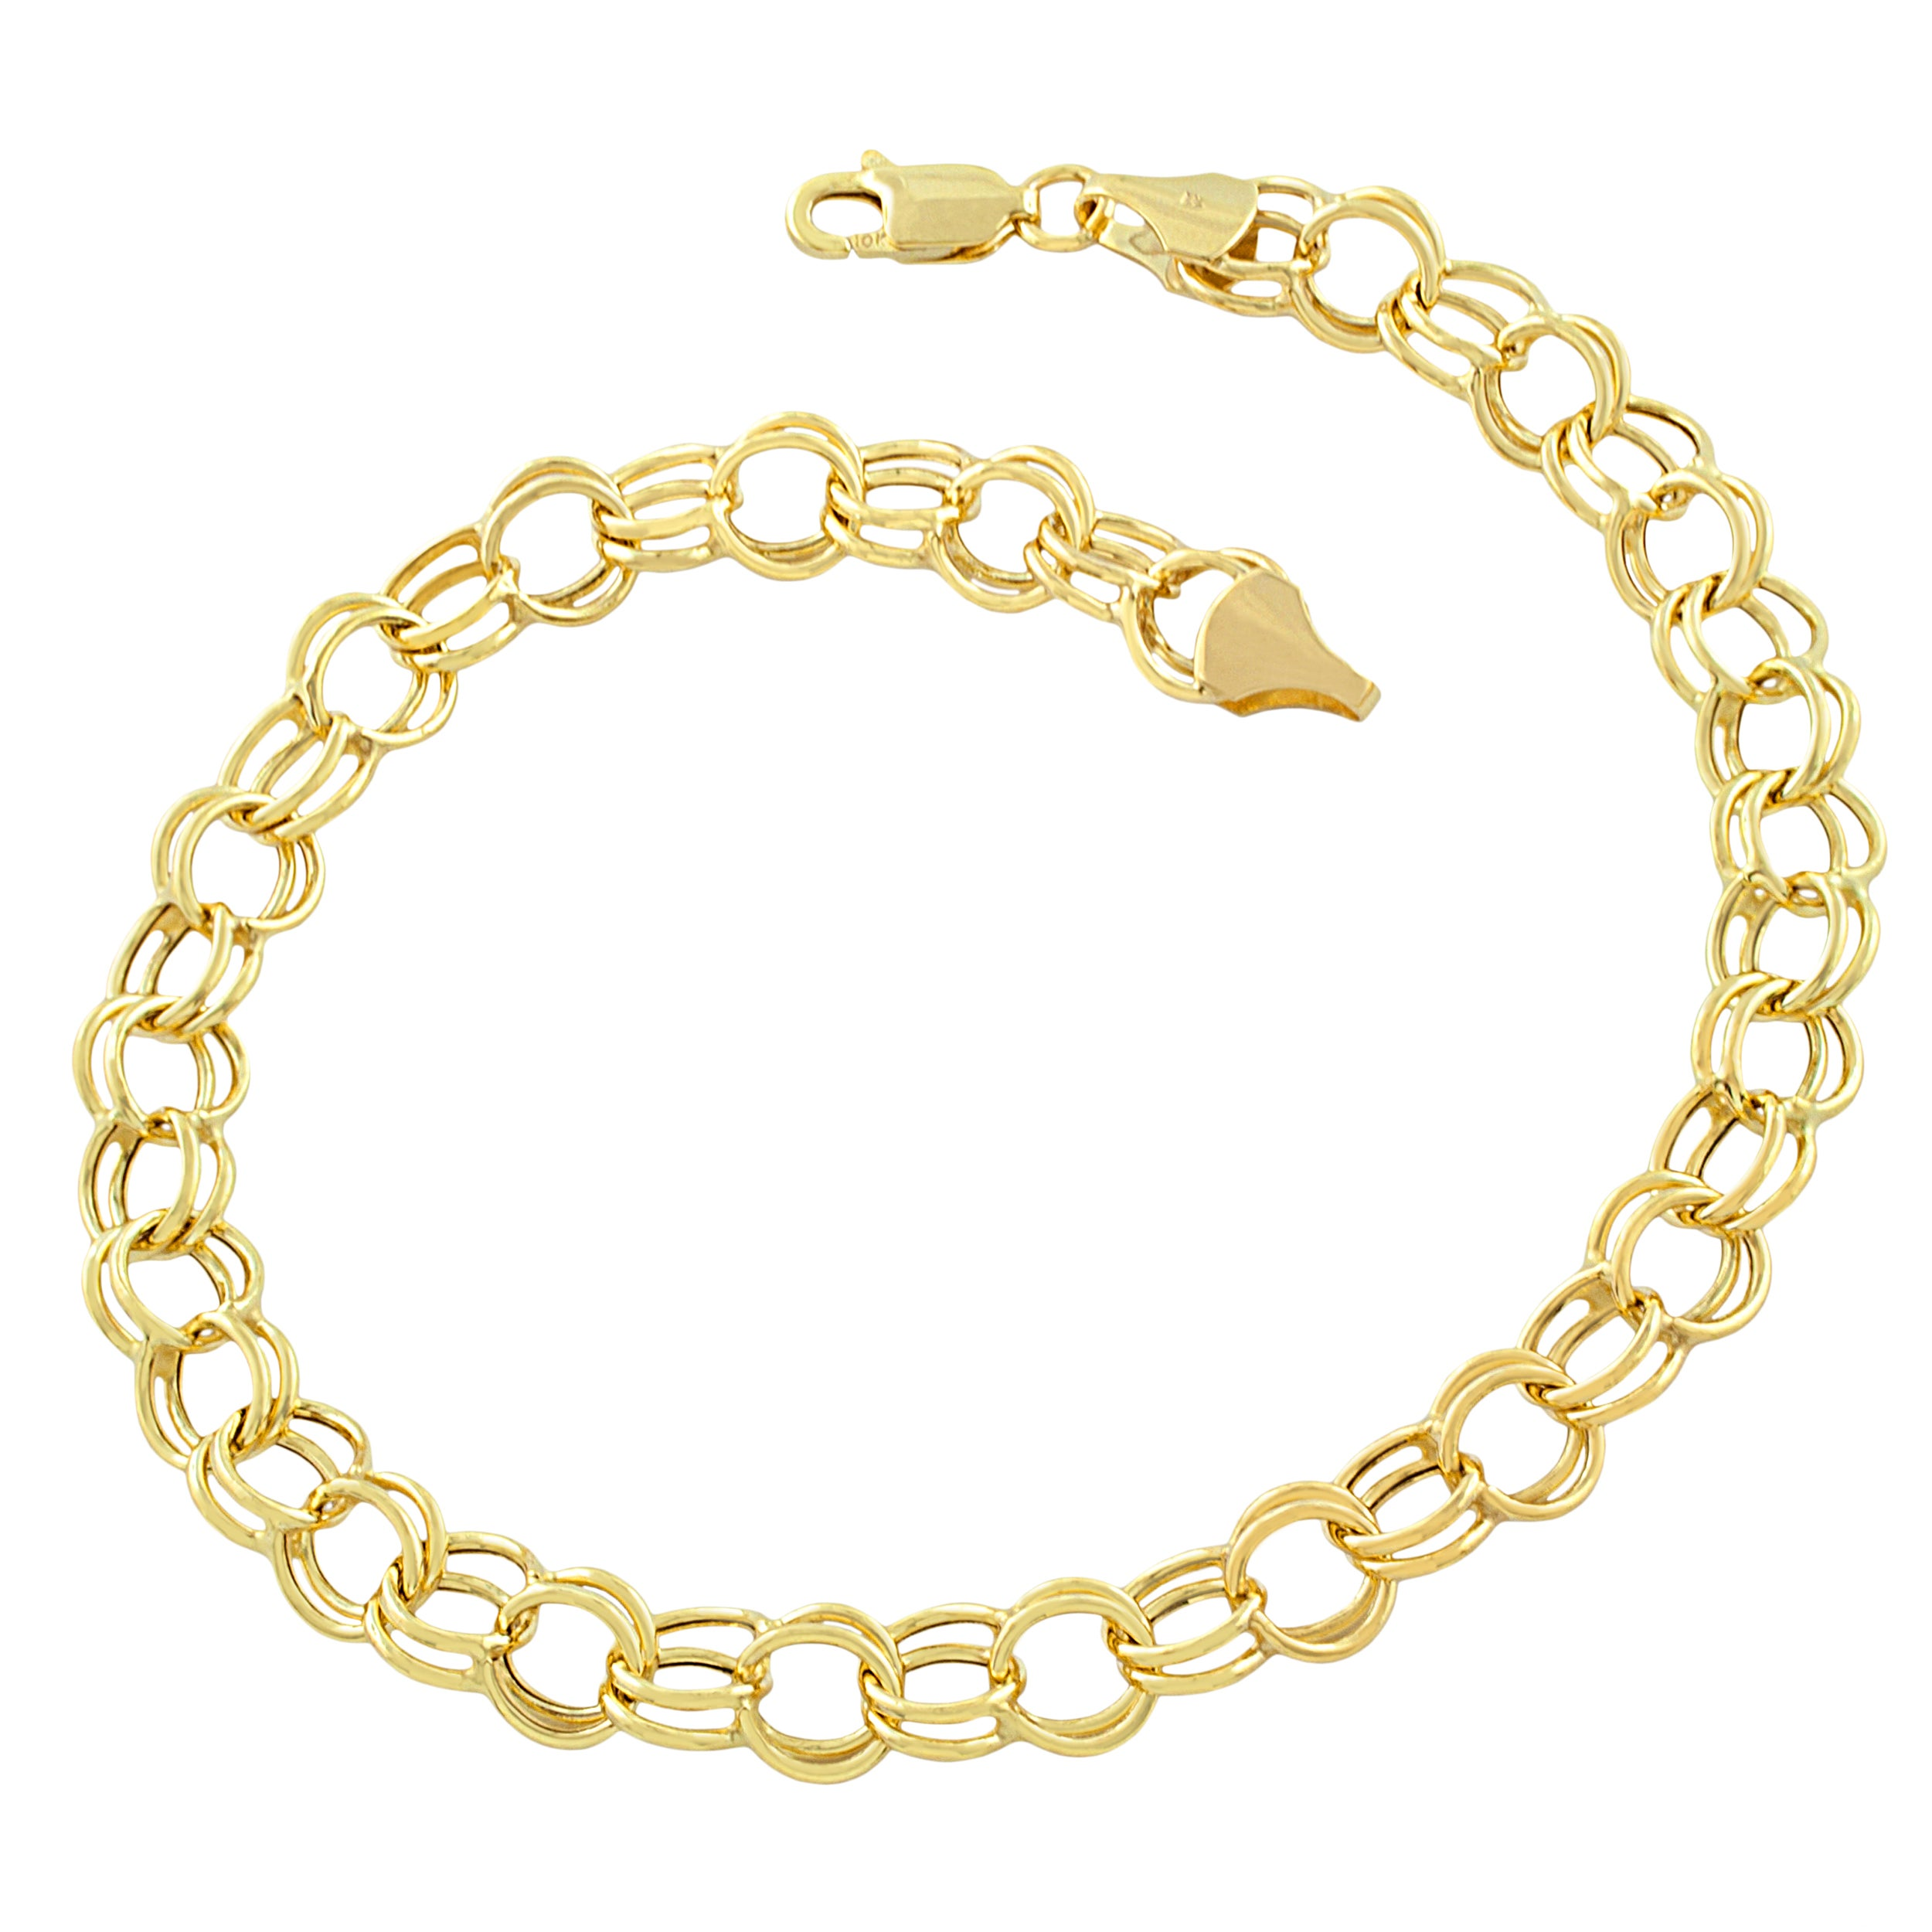 Fine Jewelry Fine Anklets 2019 New Style 14k Two Gold Abstract Fancy Link Design Ankle Bracelet 2.8 Grams Anklet Clearance Price